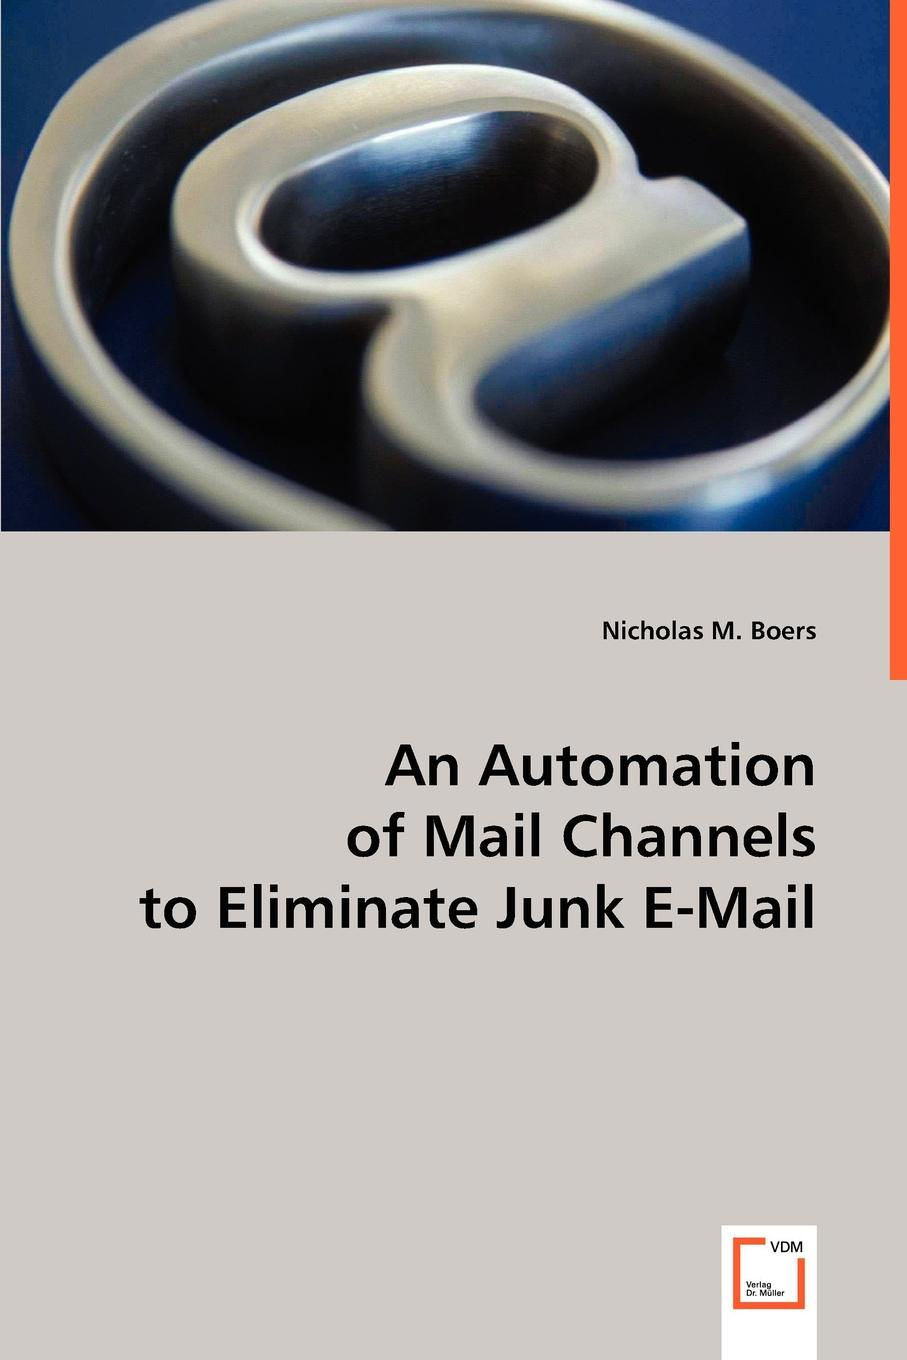 Nicholas M. Boers An Automation of Mail Channels to Eliminate Junk E-Mail joe vitale the e code 34 internet superstars reveal 44 ways to make money online almost instantly using only e mail